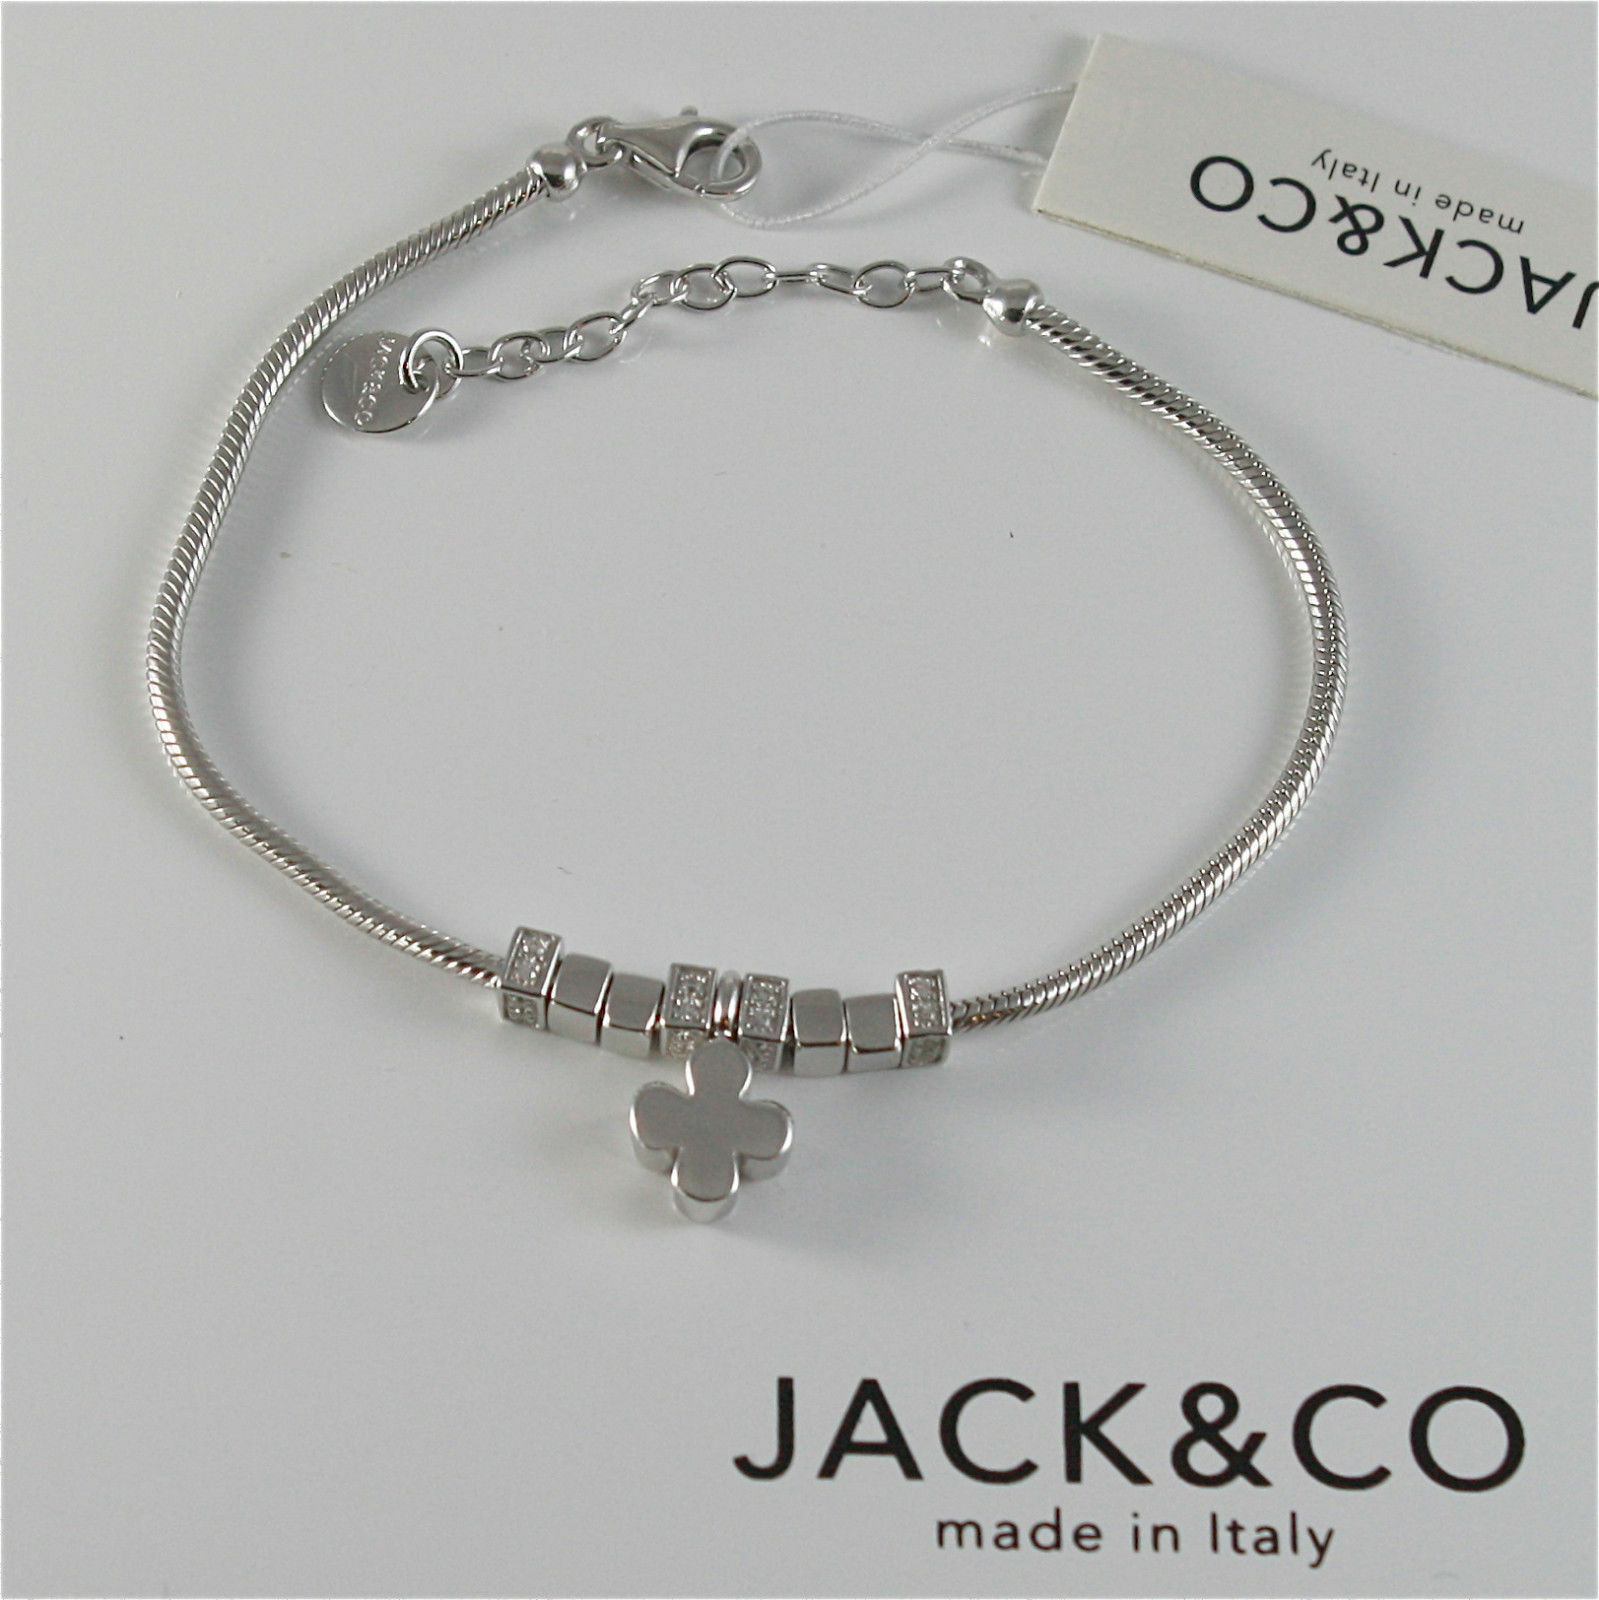 Silver 925 Bracelet Jack&co with Star Dog Butterfly Four-Leaf Clover or Cat